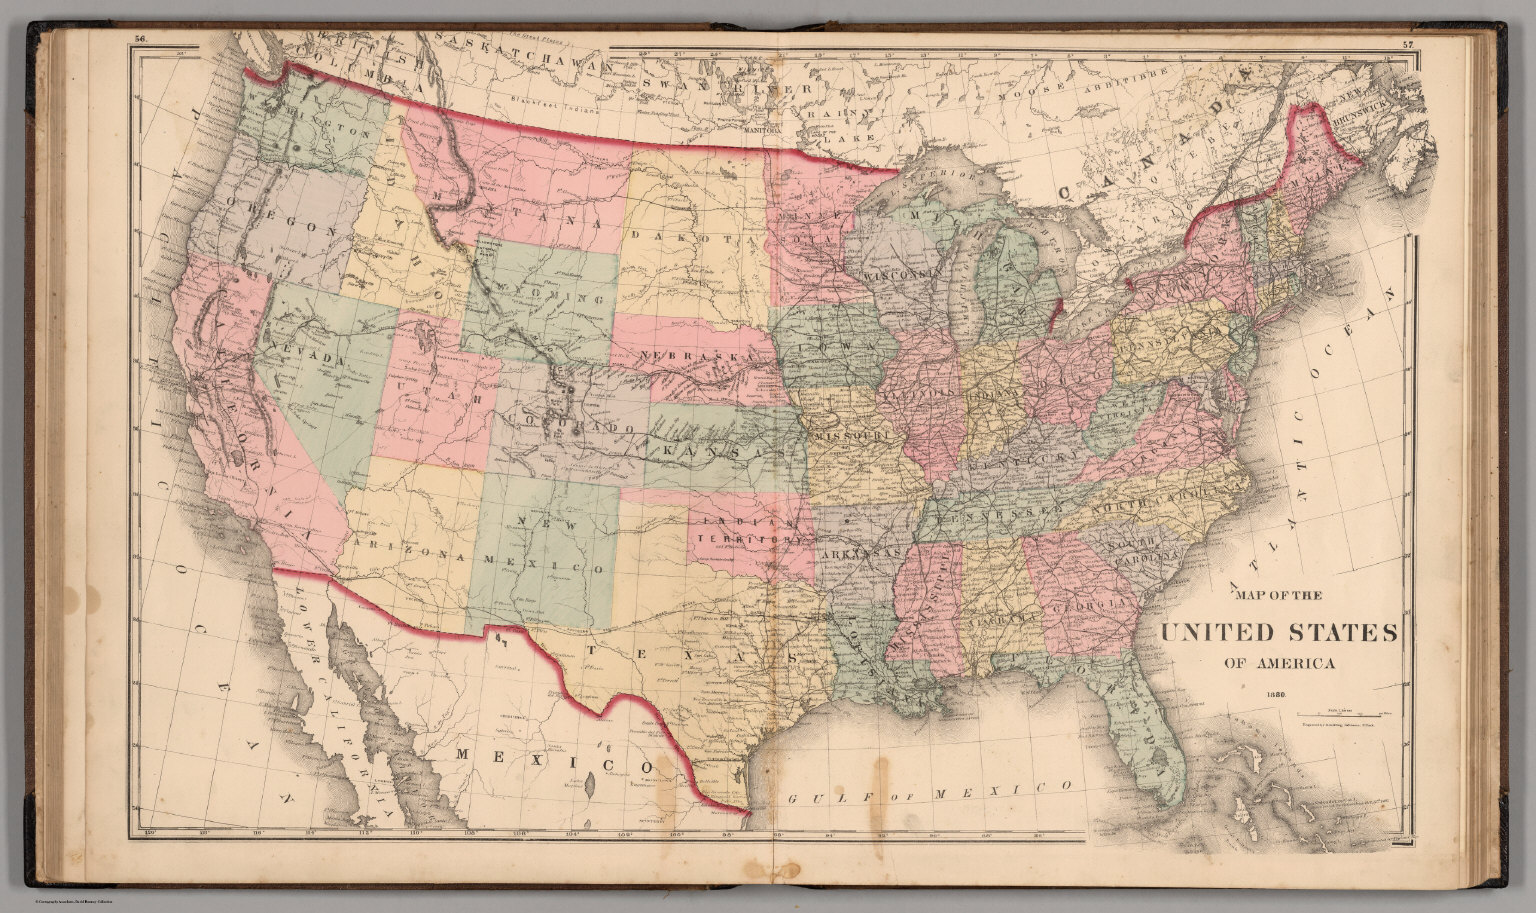 United States of America 1880  David Rumsey Historical Map